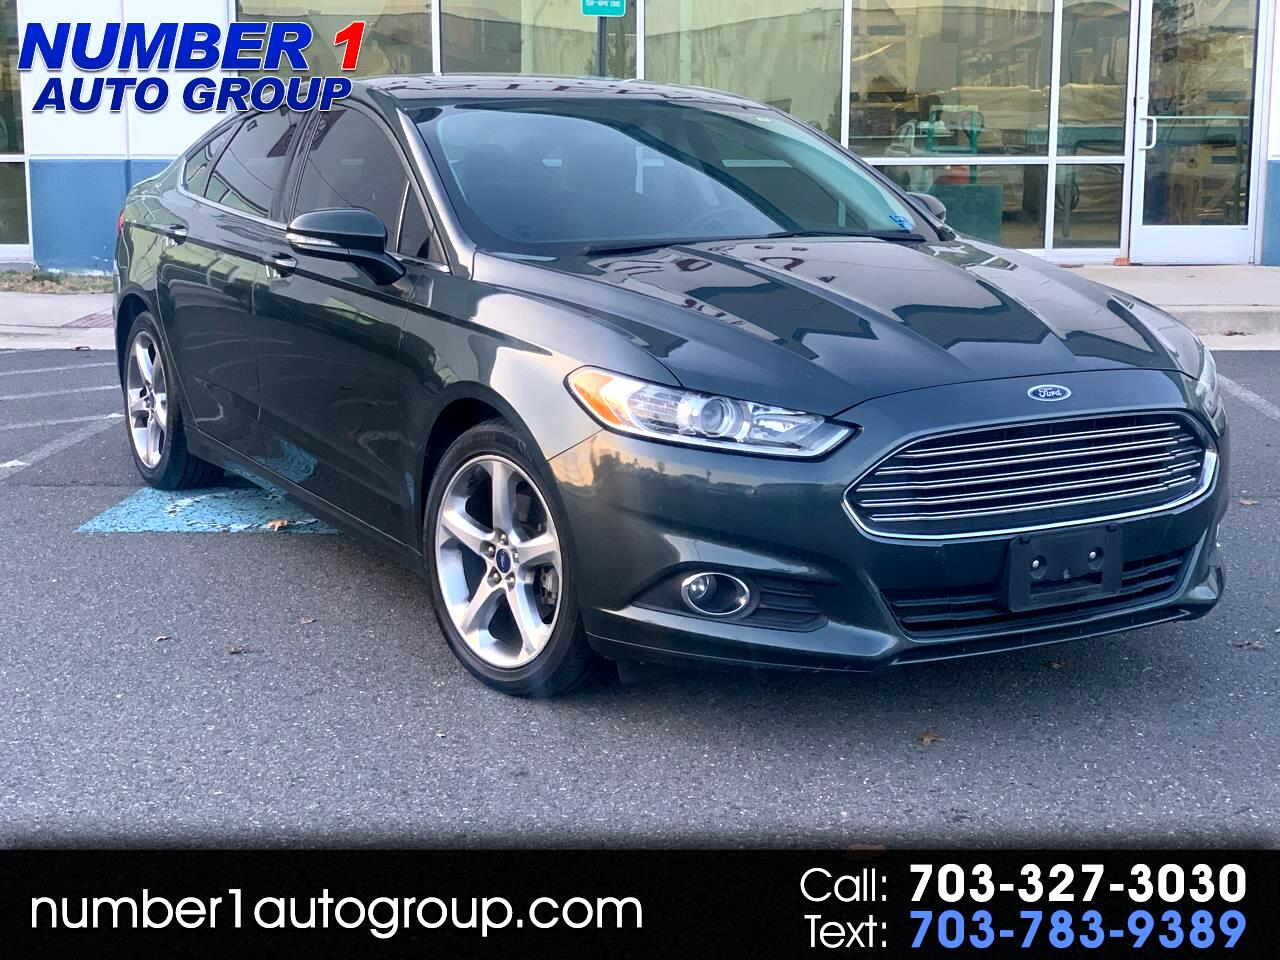 Ford Fusion 4dr Sdn I4 SE FWD 2015